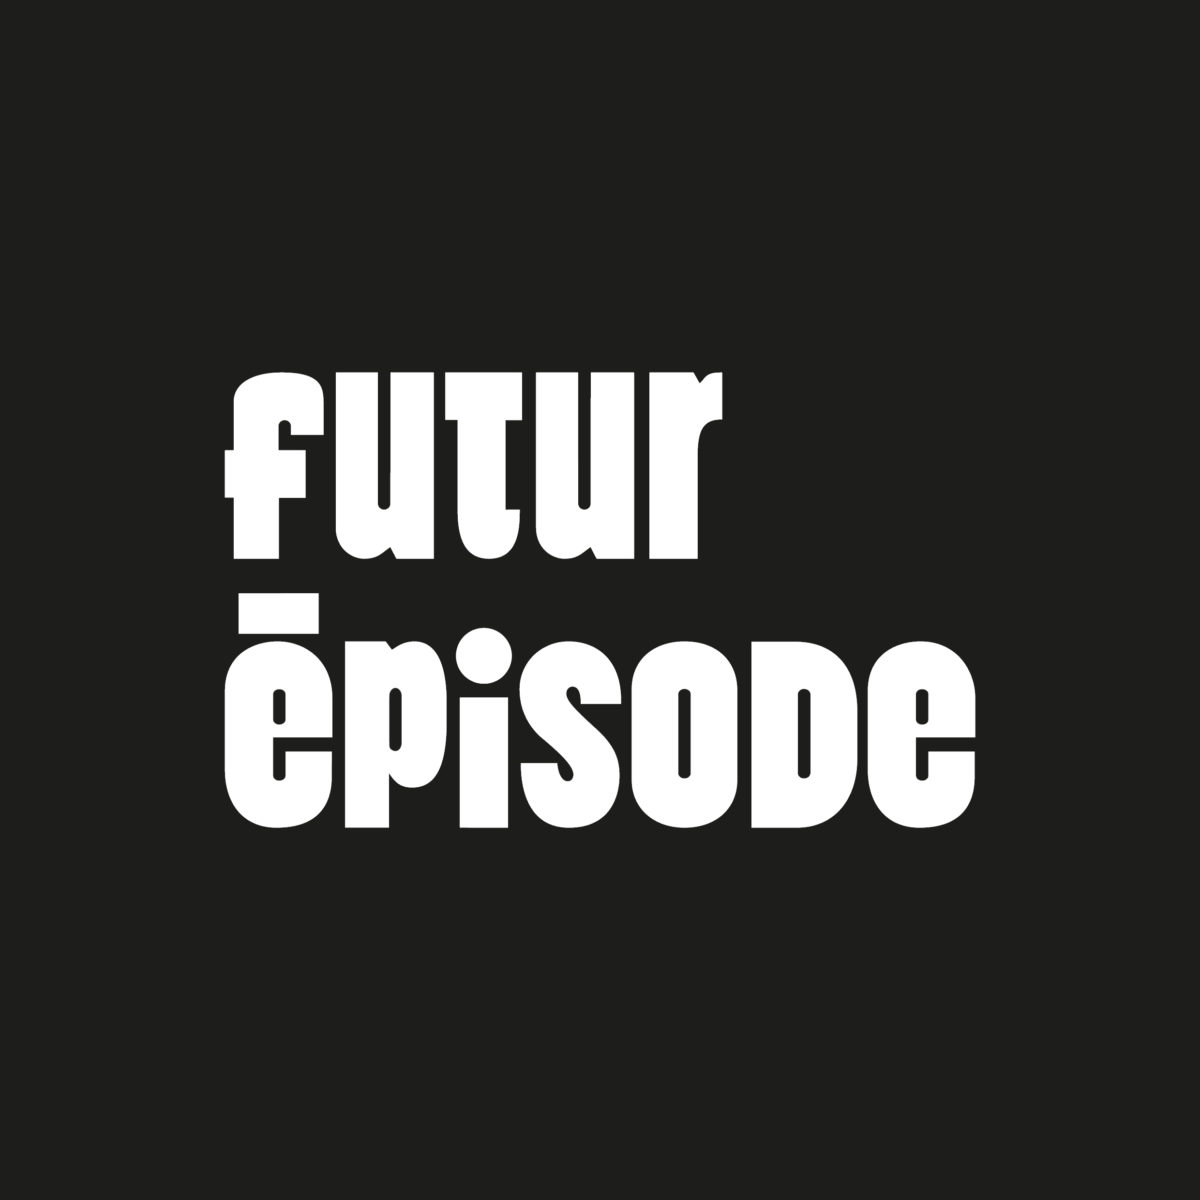 crowdview #15 Futur Episode